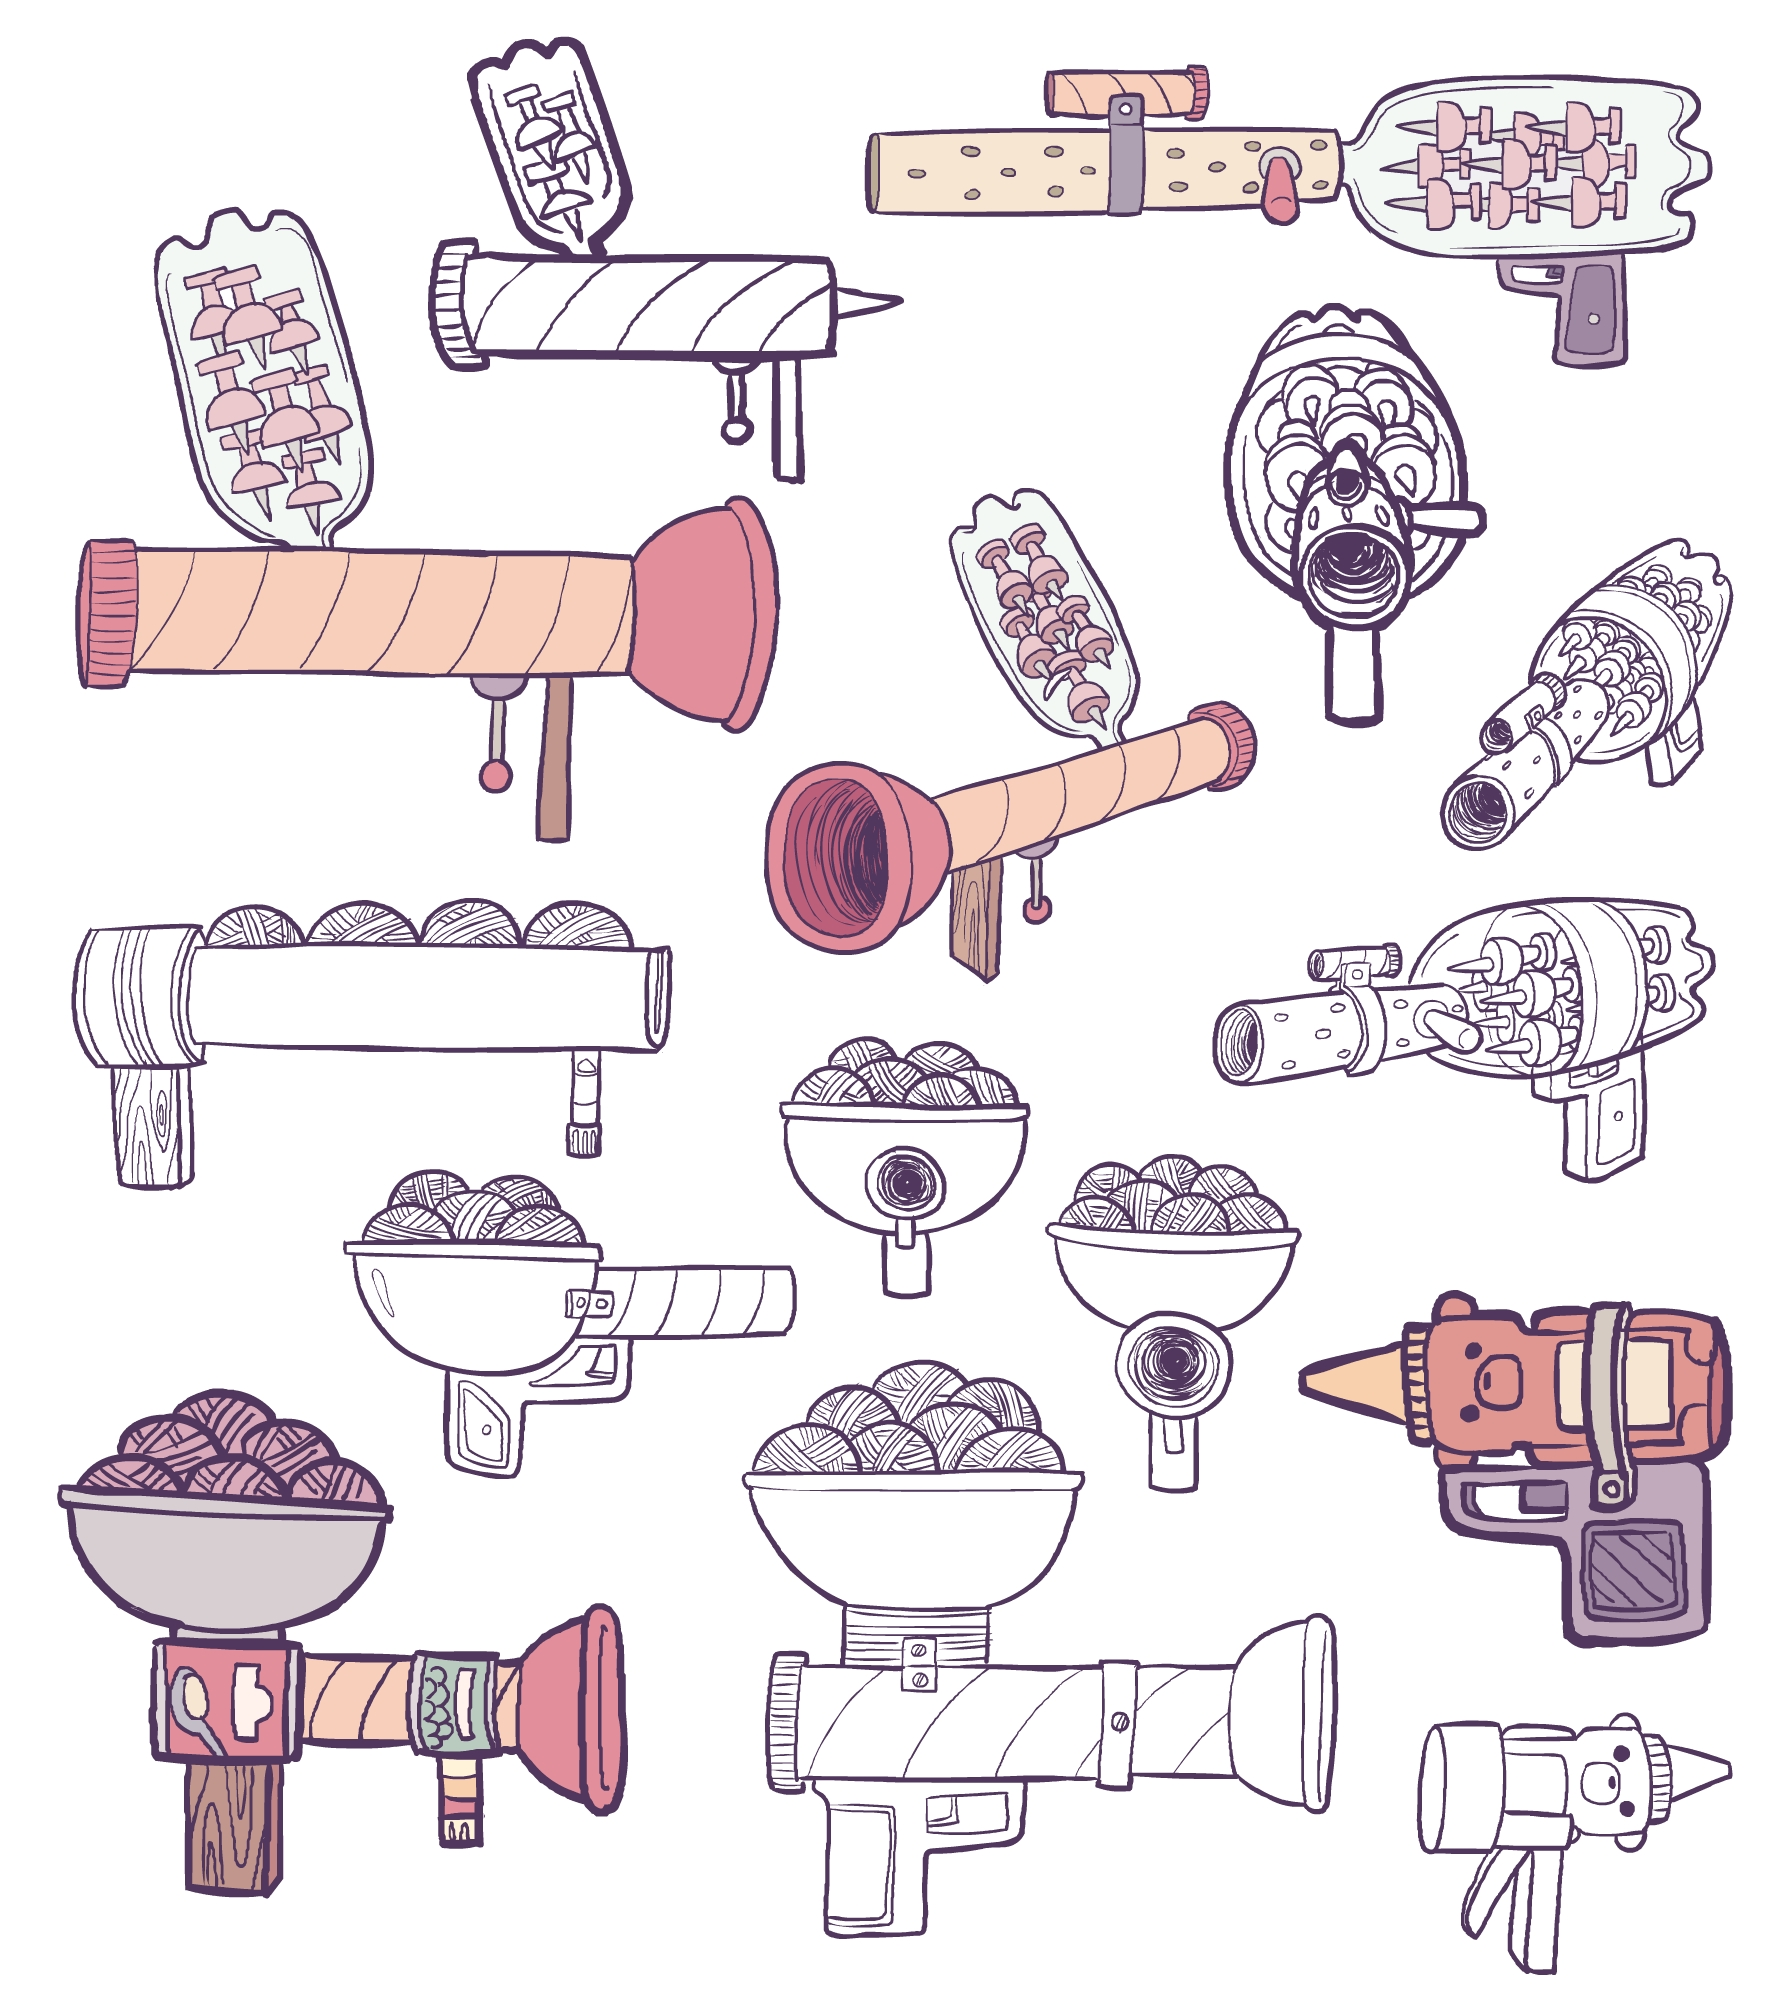 Weapon design_v03_3.jpg